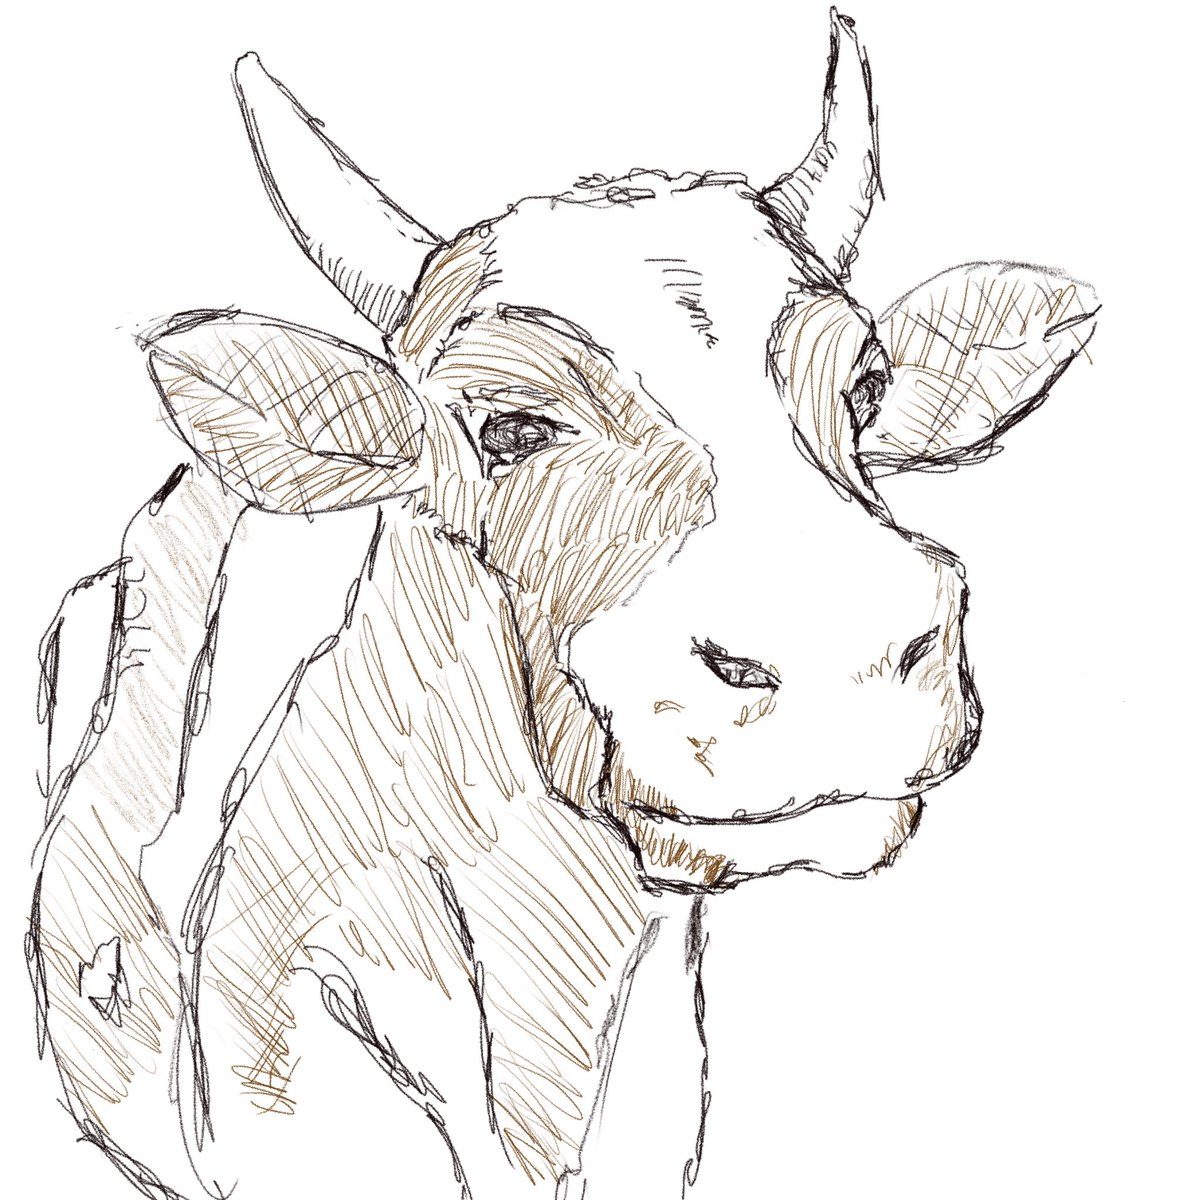 Cow. #sketchdaily 61/365